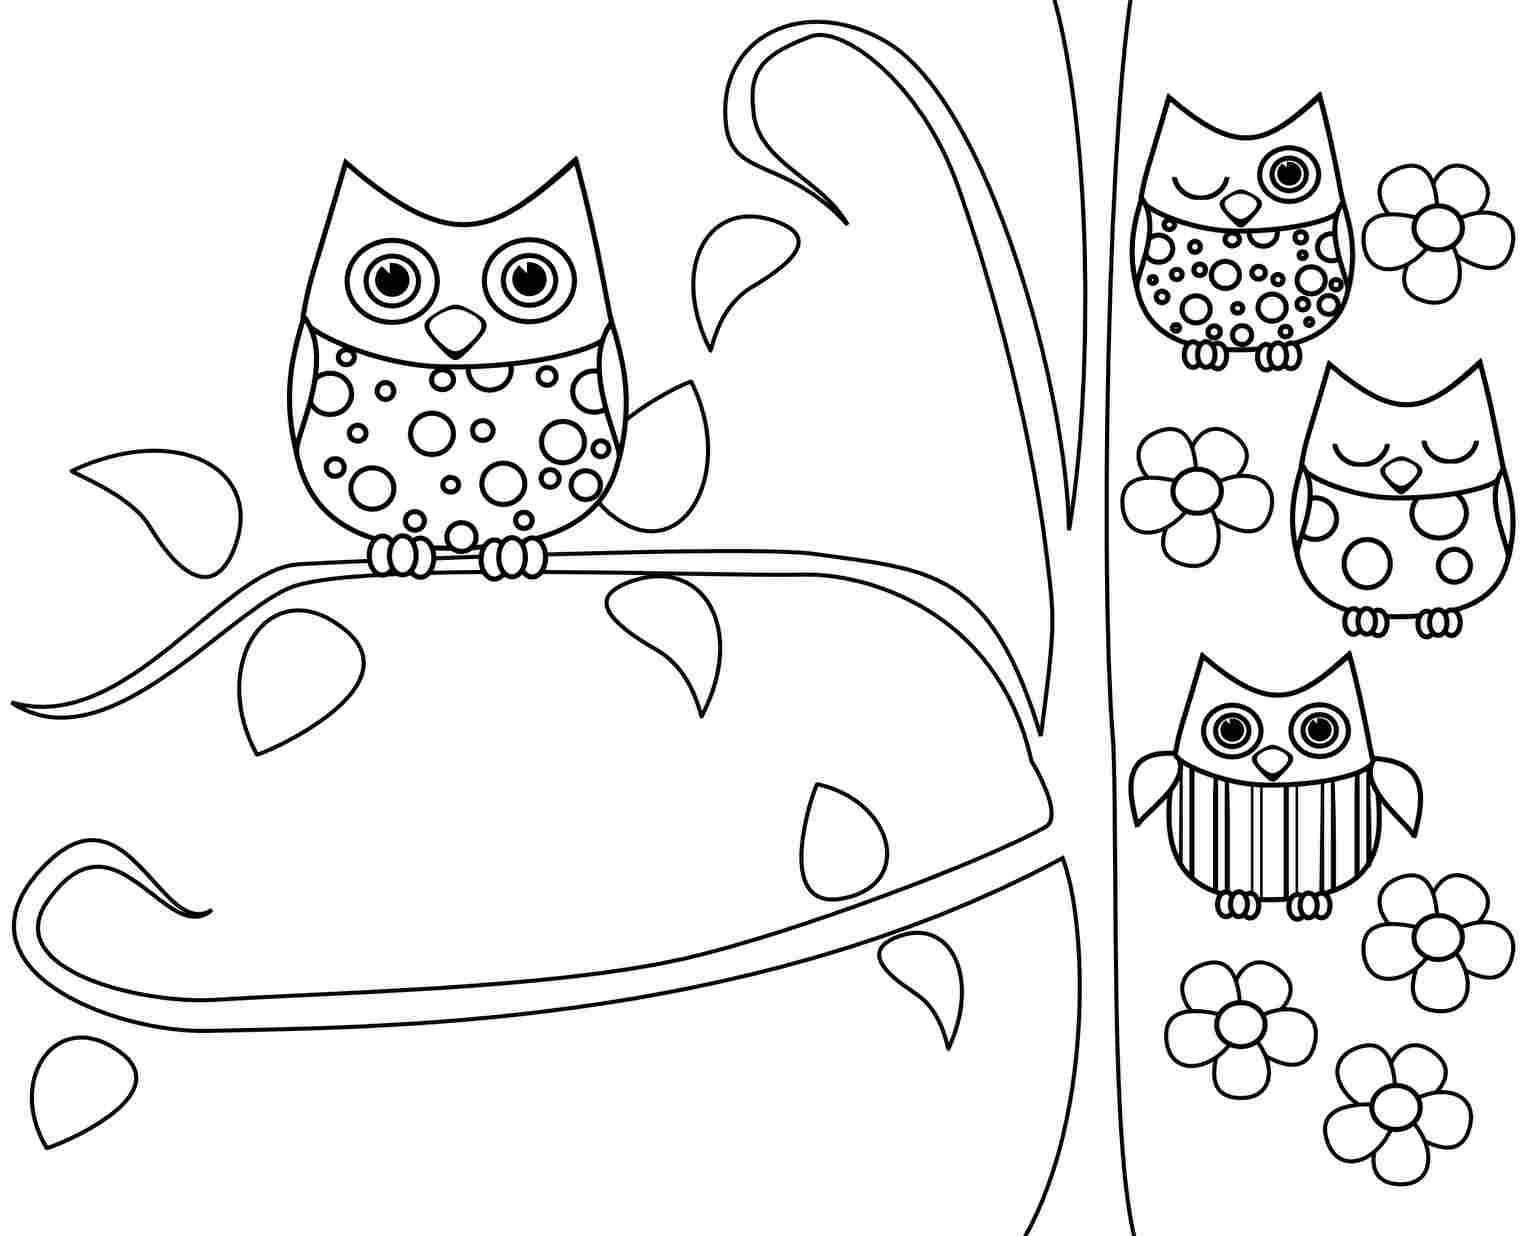 Owl coloring pages free printable for Printable owl coloring pages